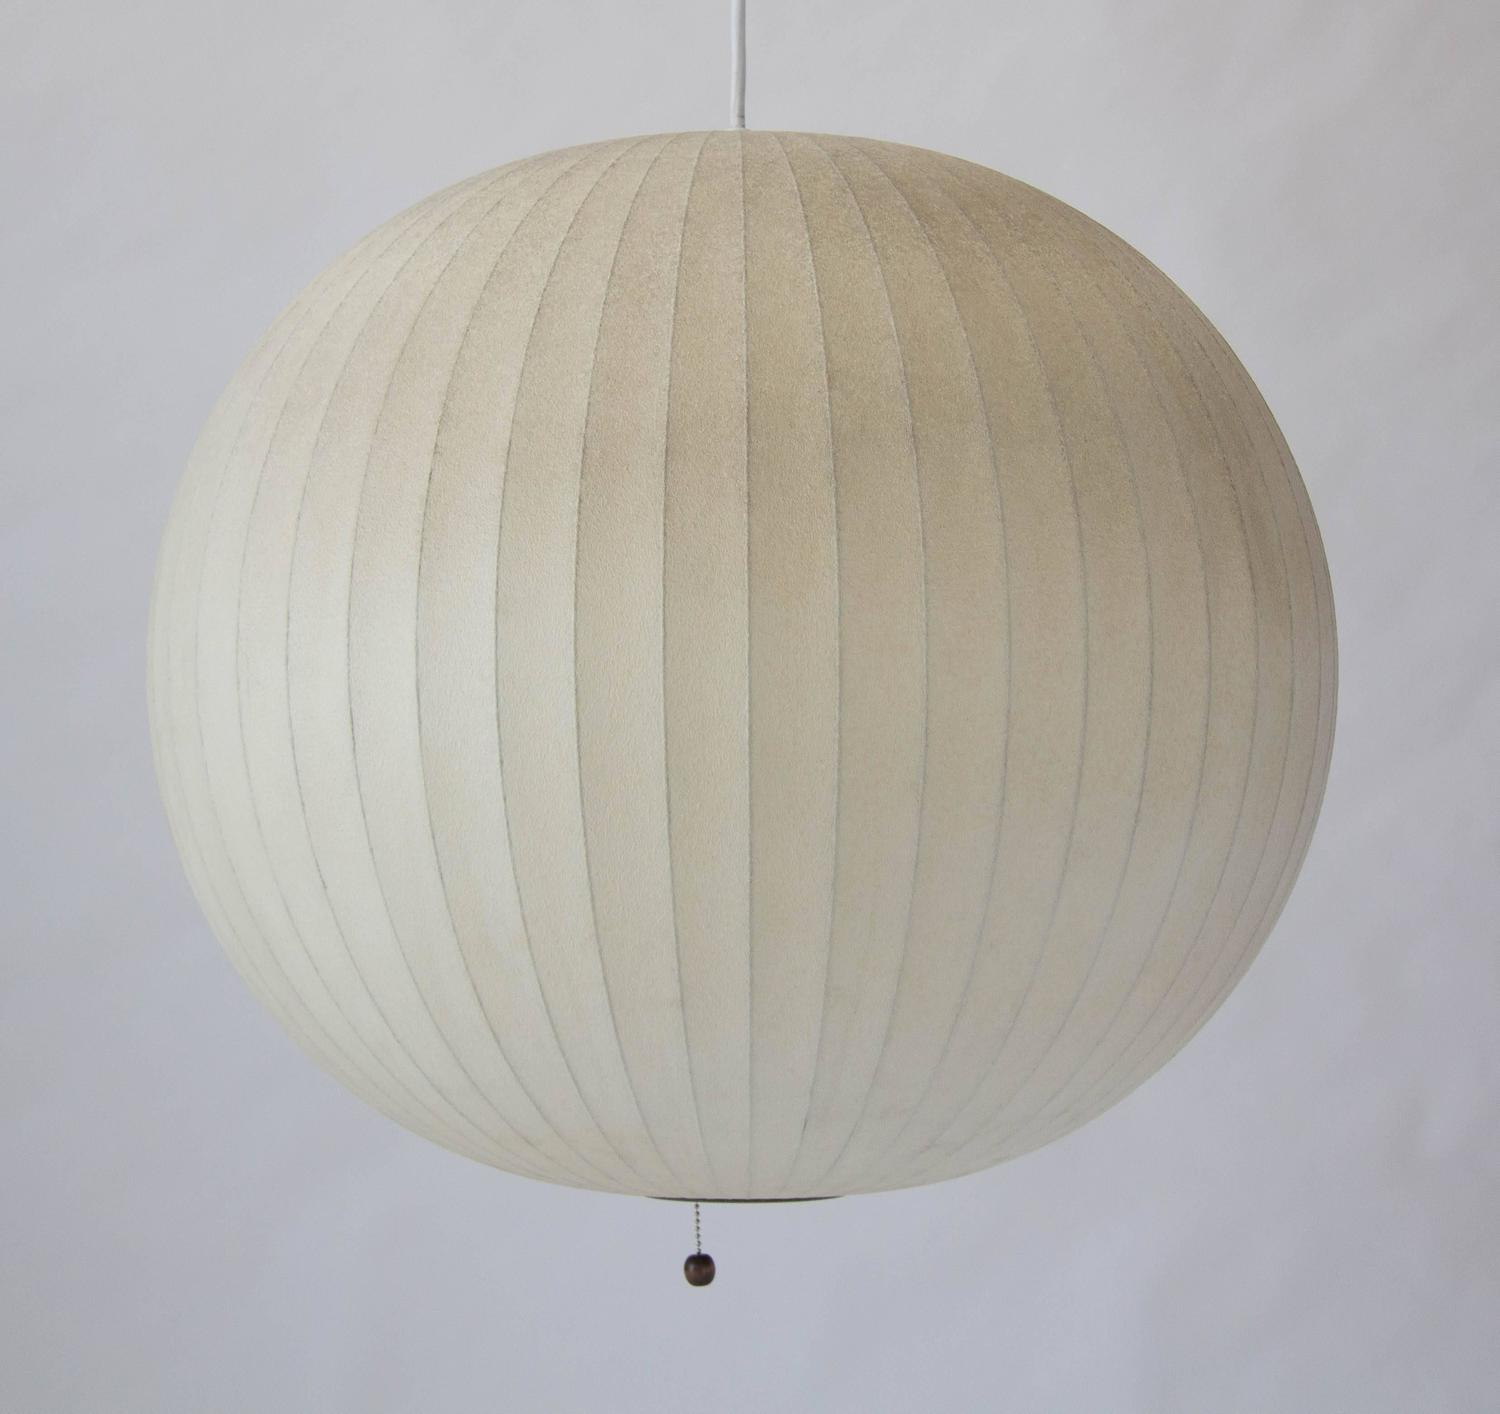 george nelson bubble lamp at 1stdibs. Black Bedroom Furniture Sets. Home Design Ideas